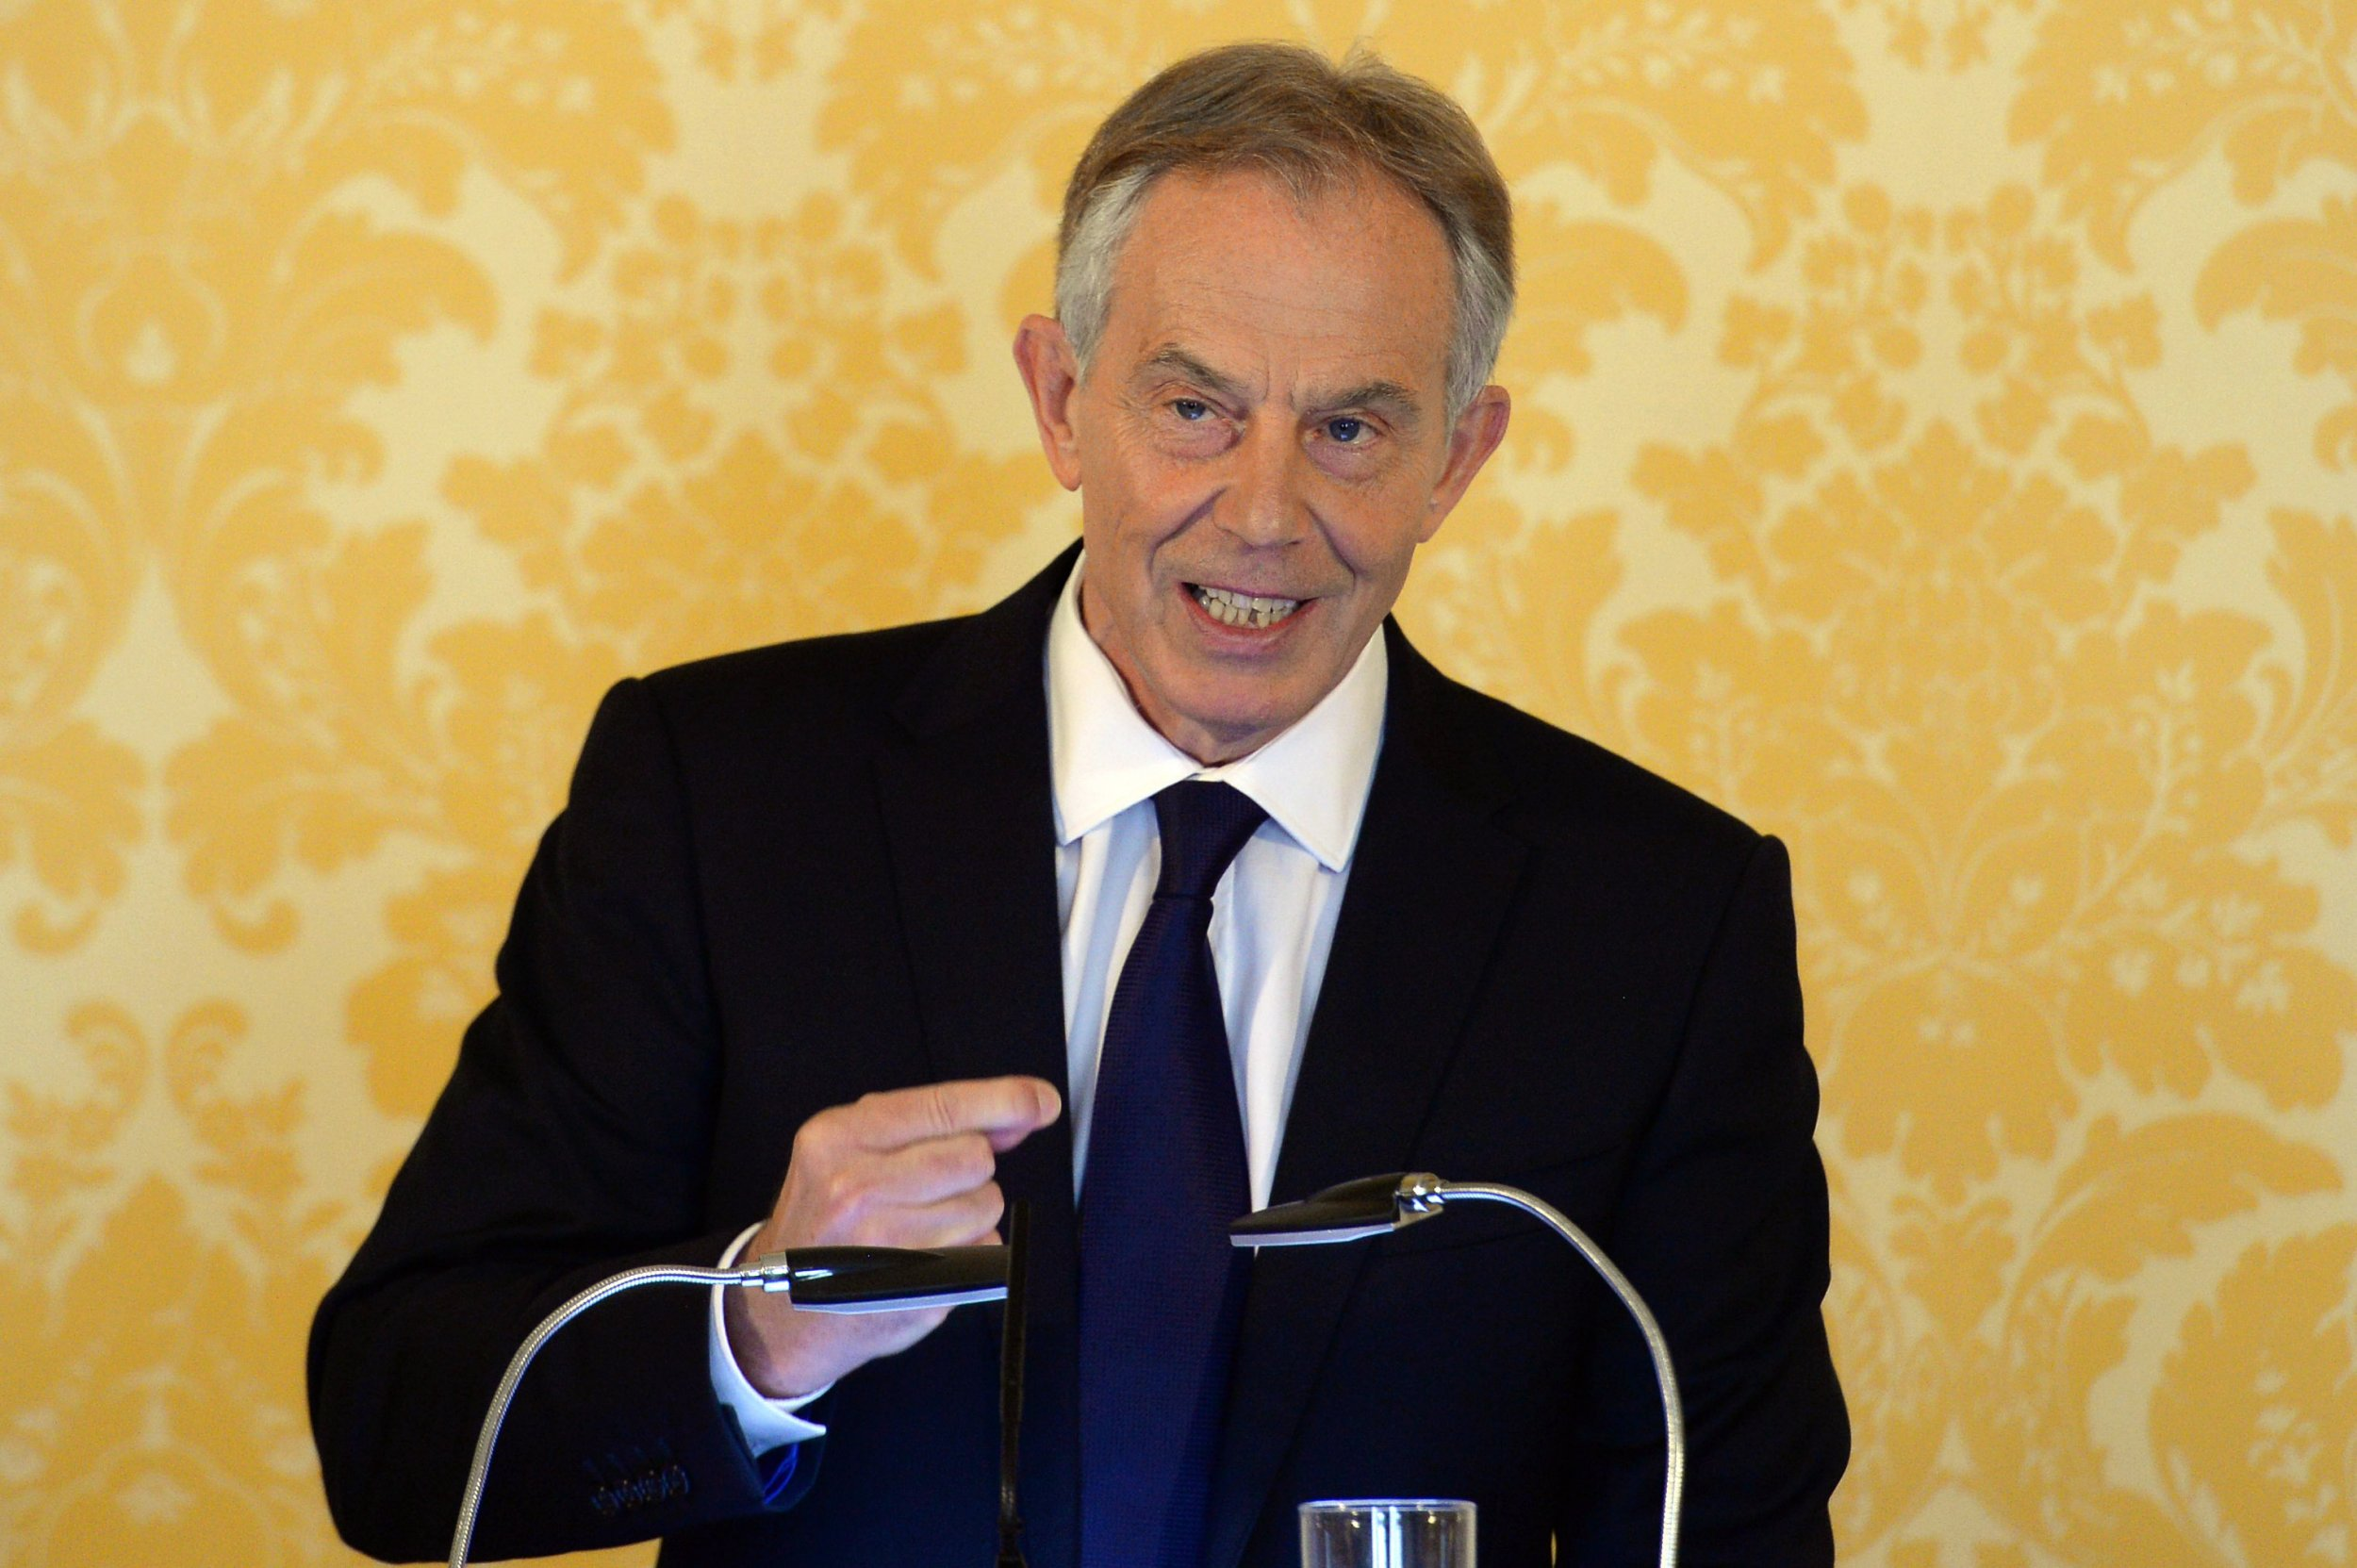 Could families of soldiers killed during the war in Iraq sue Tony Blair?